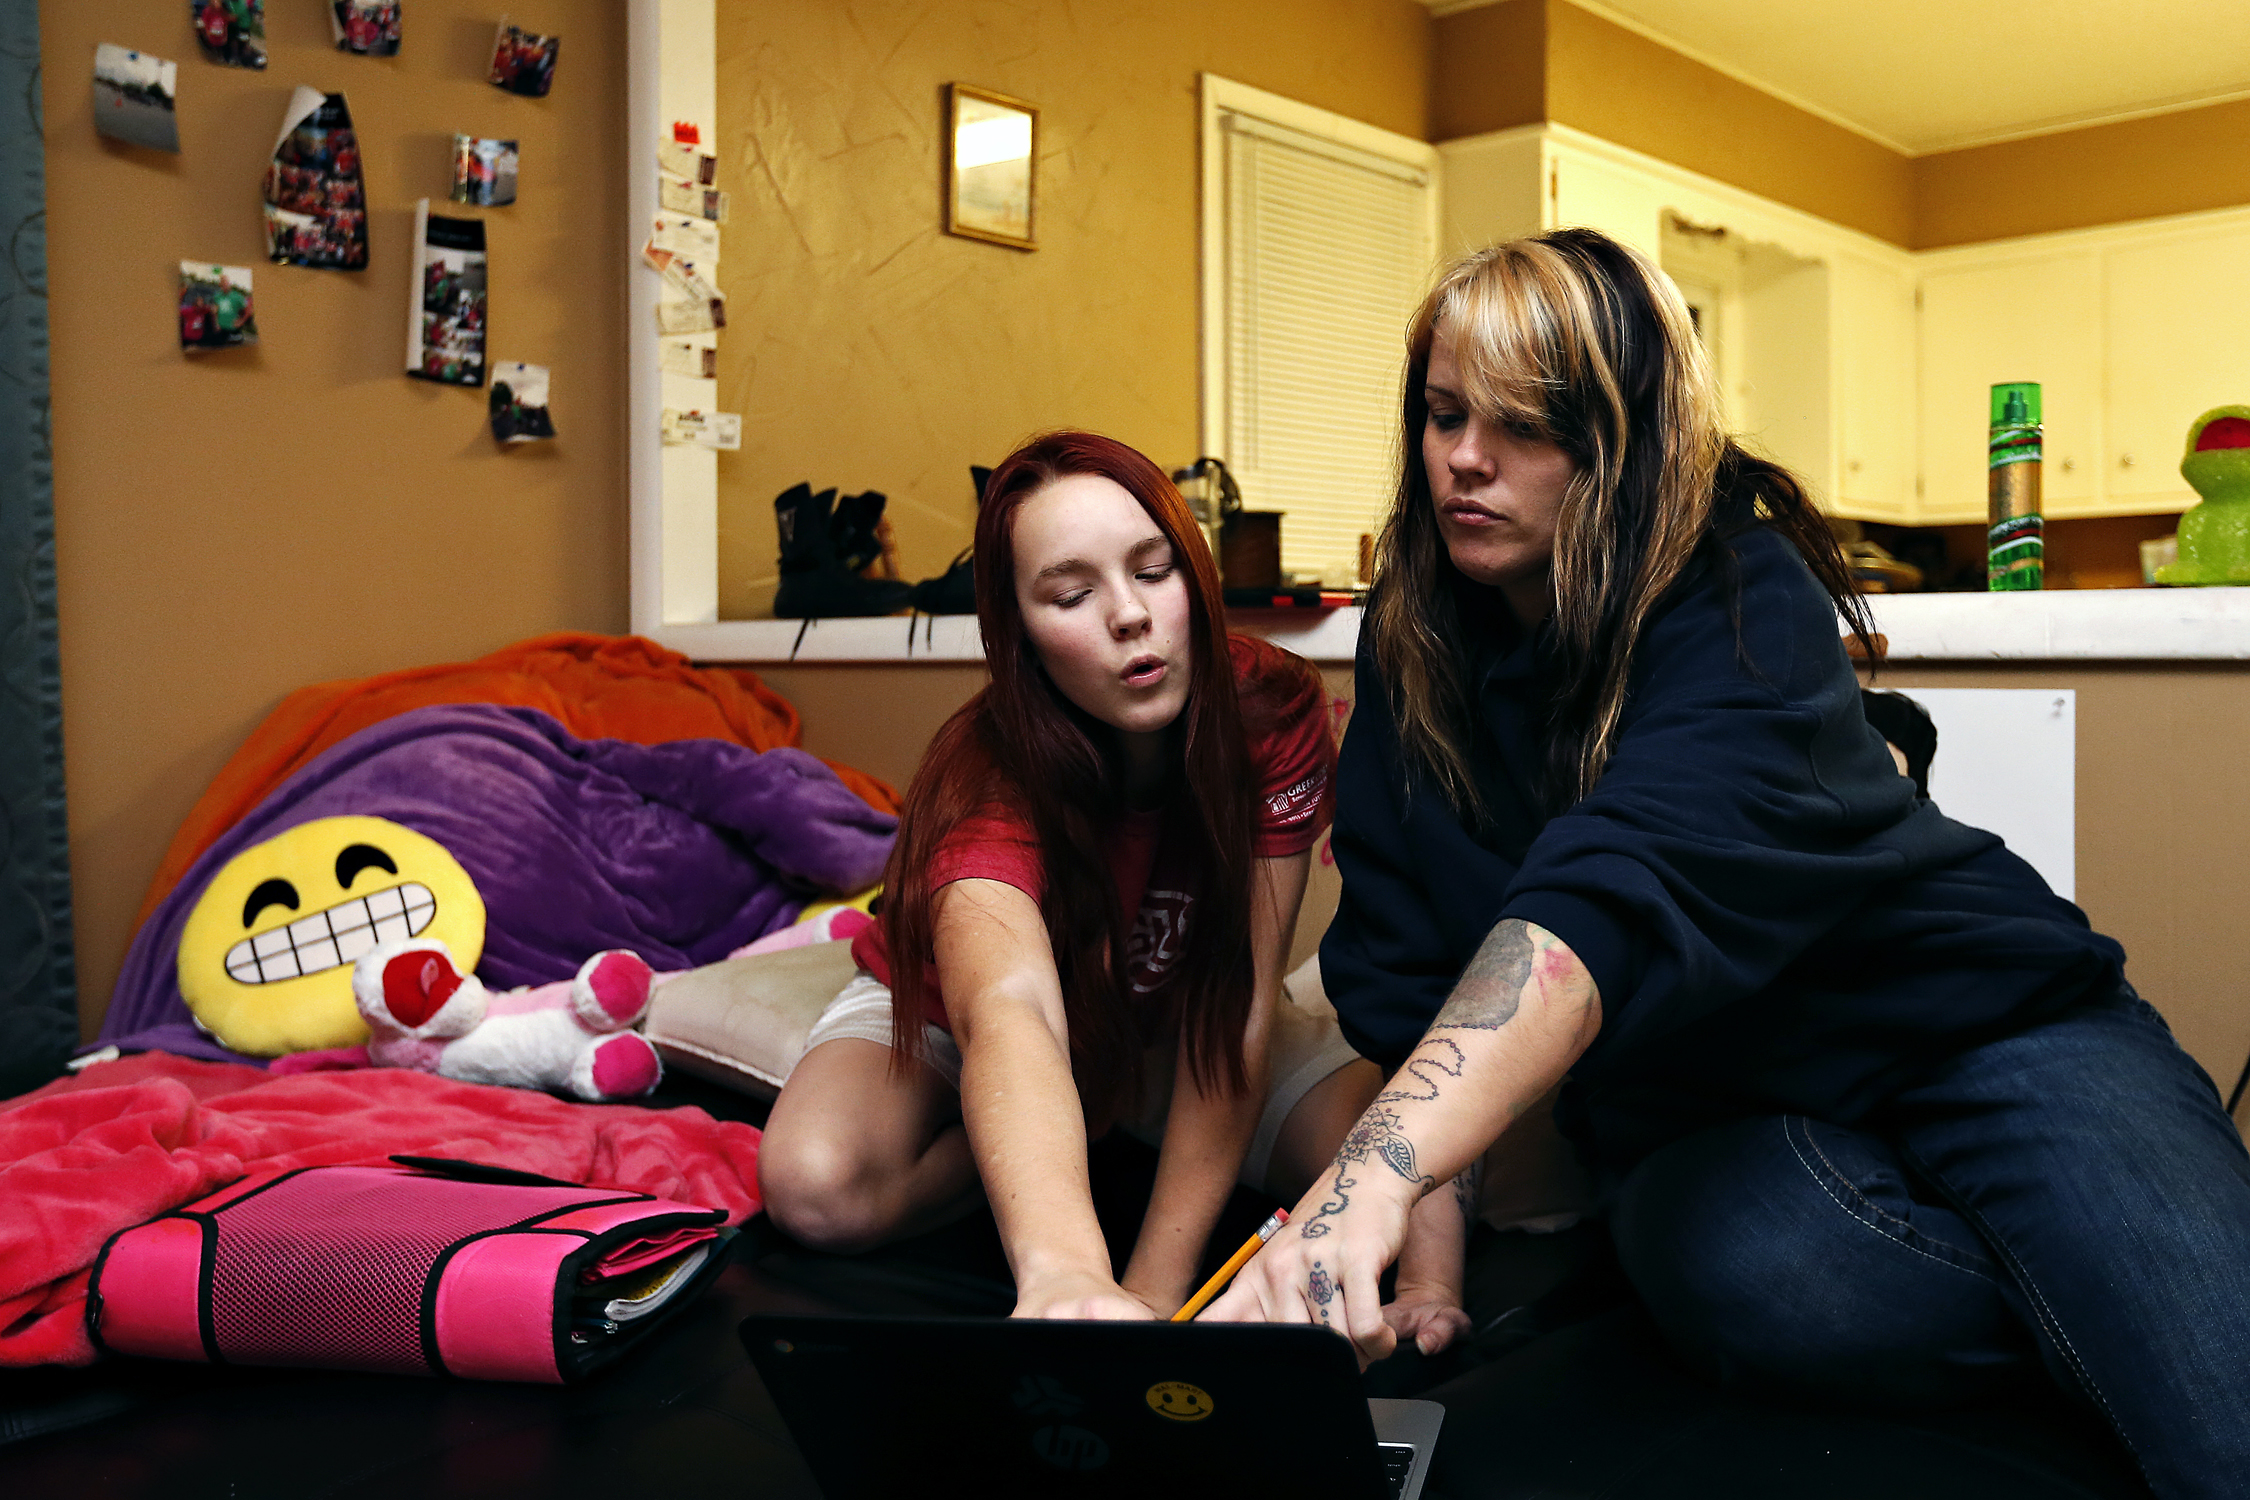 Shilyn Bradt and her mother Heather Bradt-Kingsley work on Bradt's homework at their home in Springfield, Mo. on Feb. 9, 2016.Through Shilyn's health struggles, Heather kept hope that her daughter would survive and grow up normally, which she is doing now.